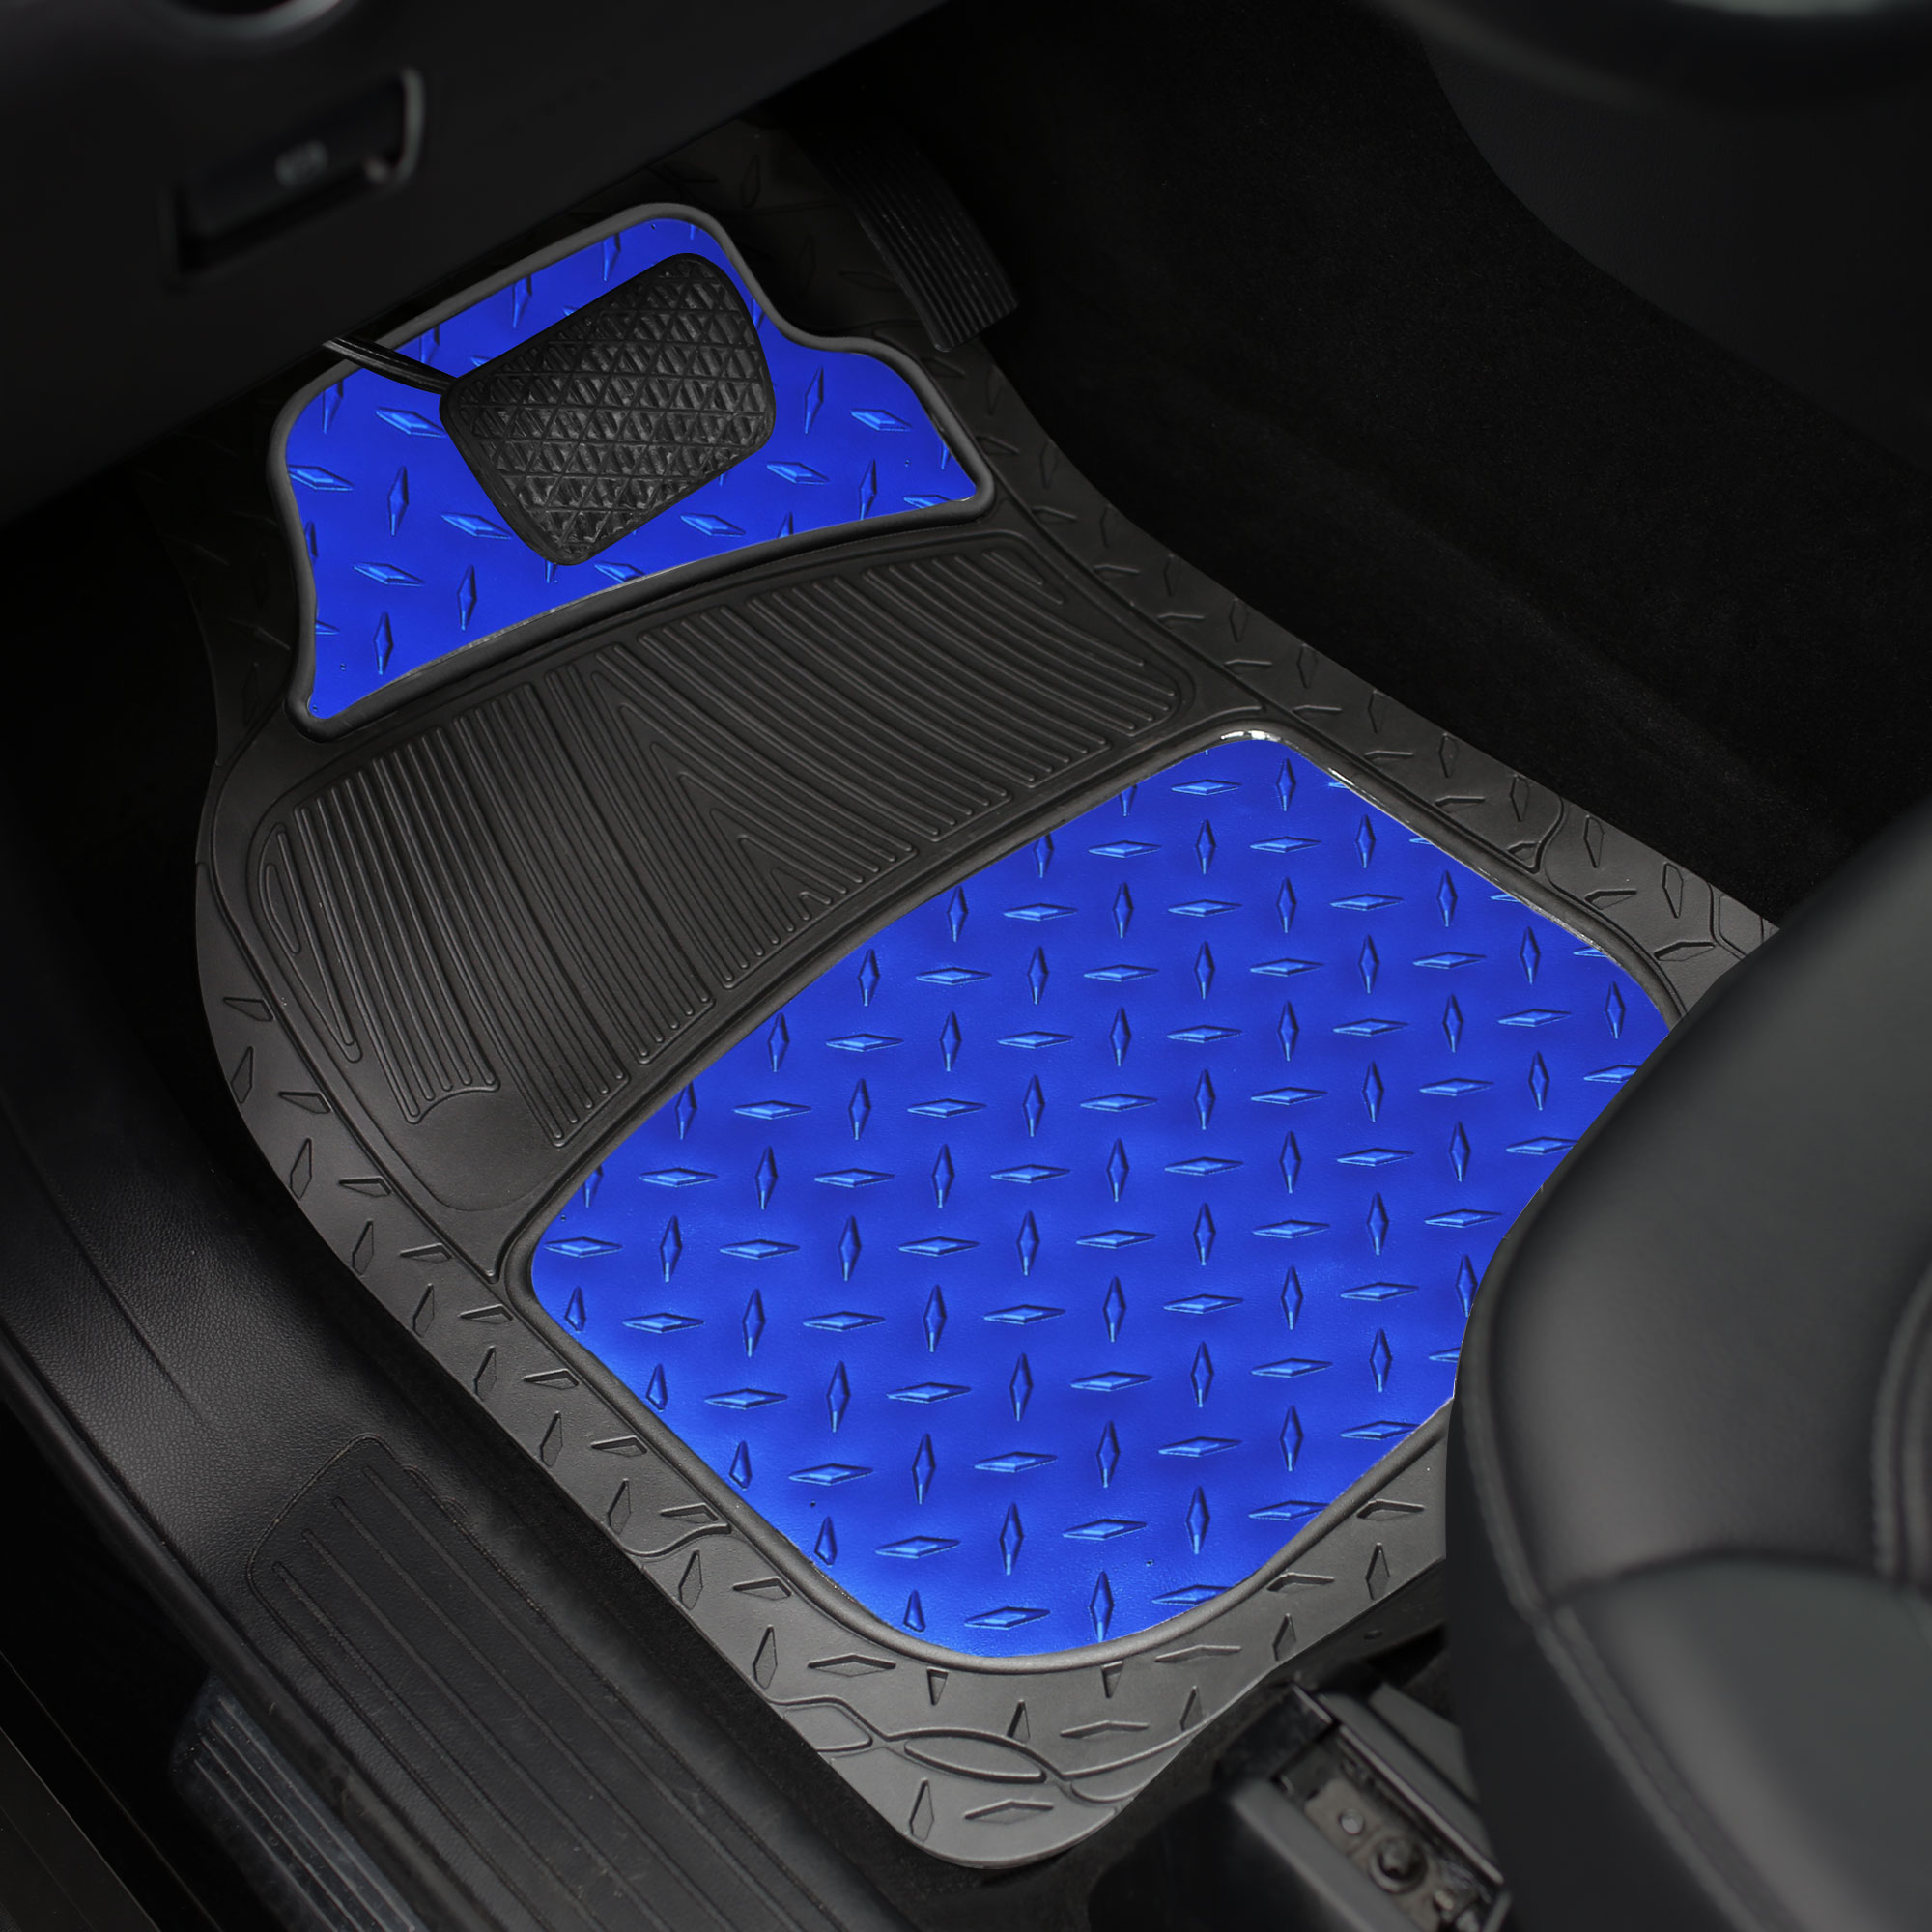 Metallic Rubber Floor Mats For Car Suv Truck Semi Trimmable Heavy